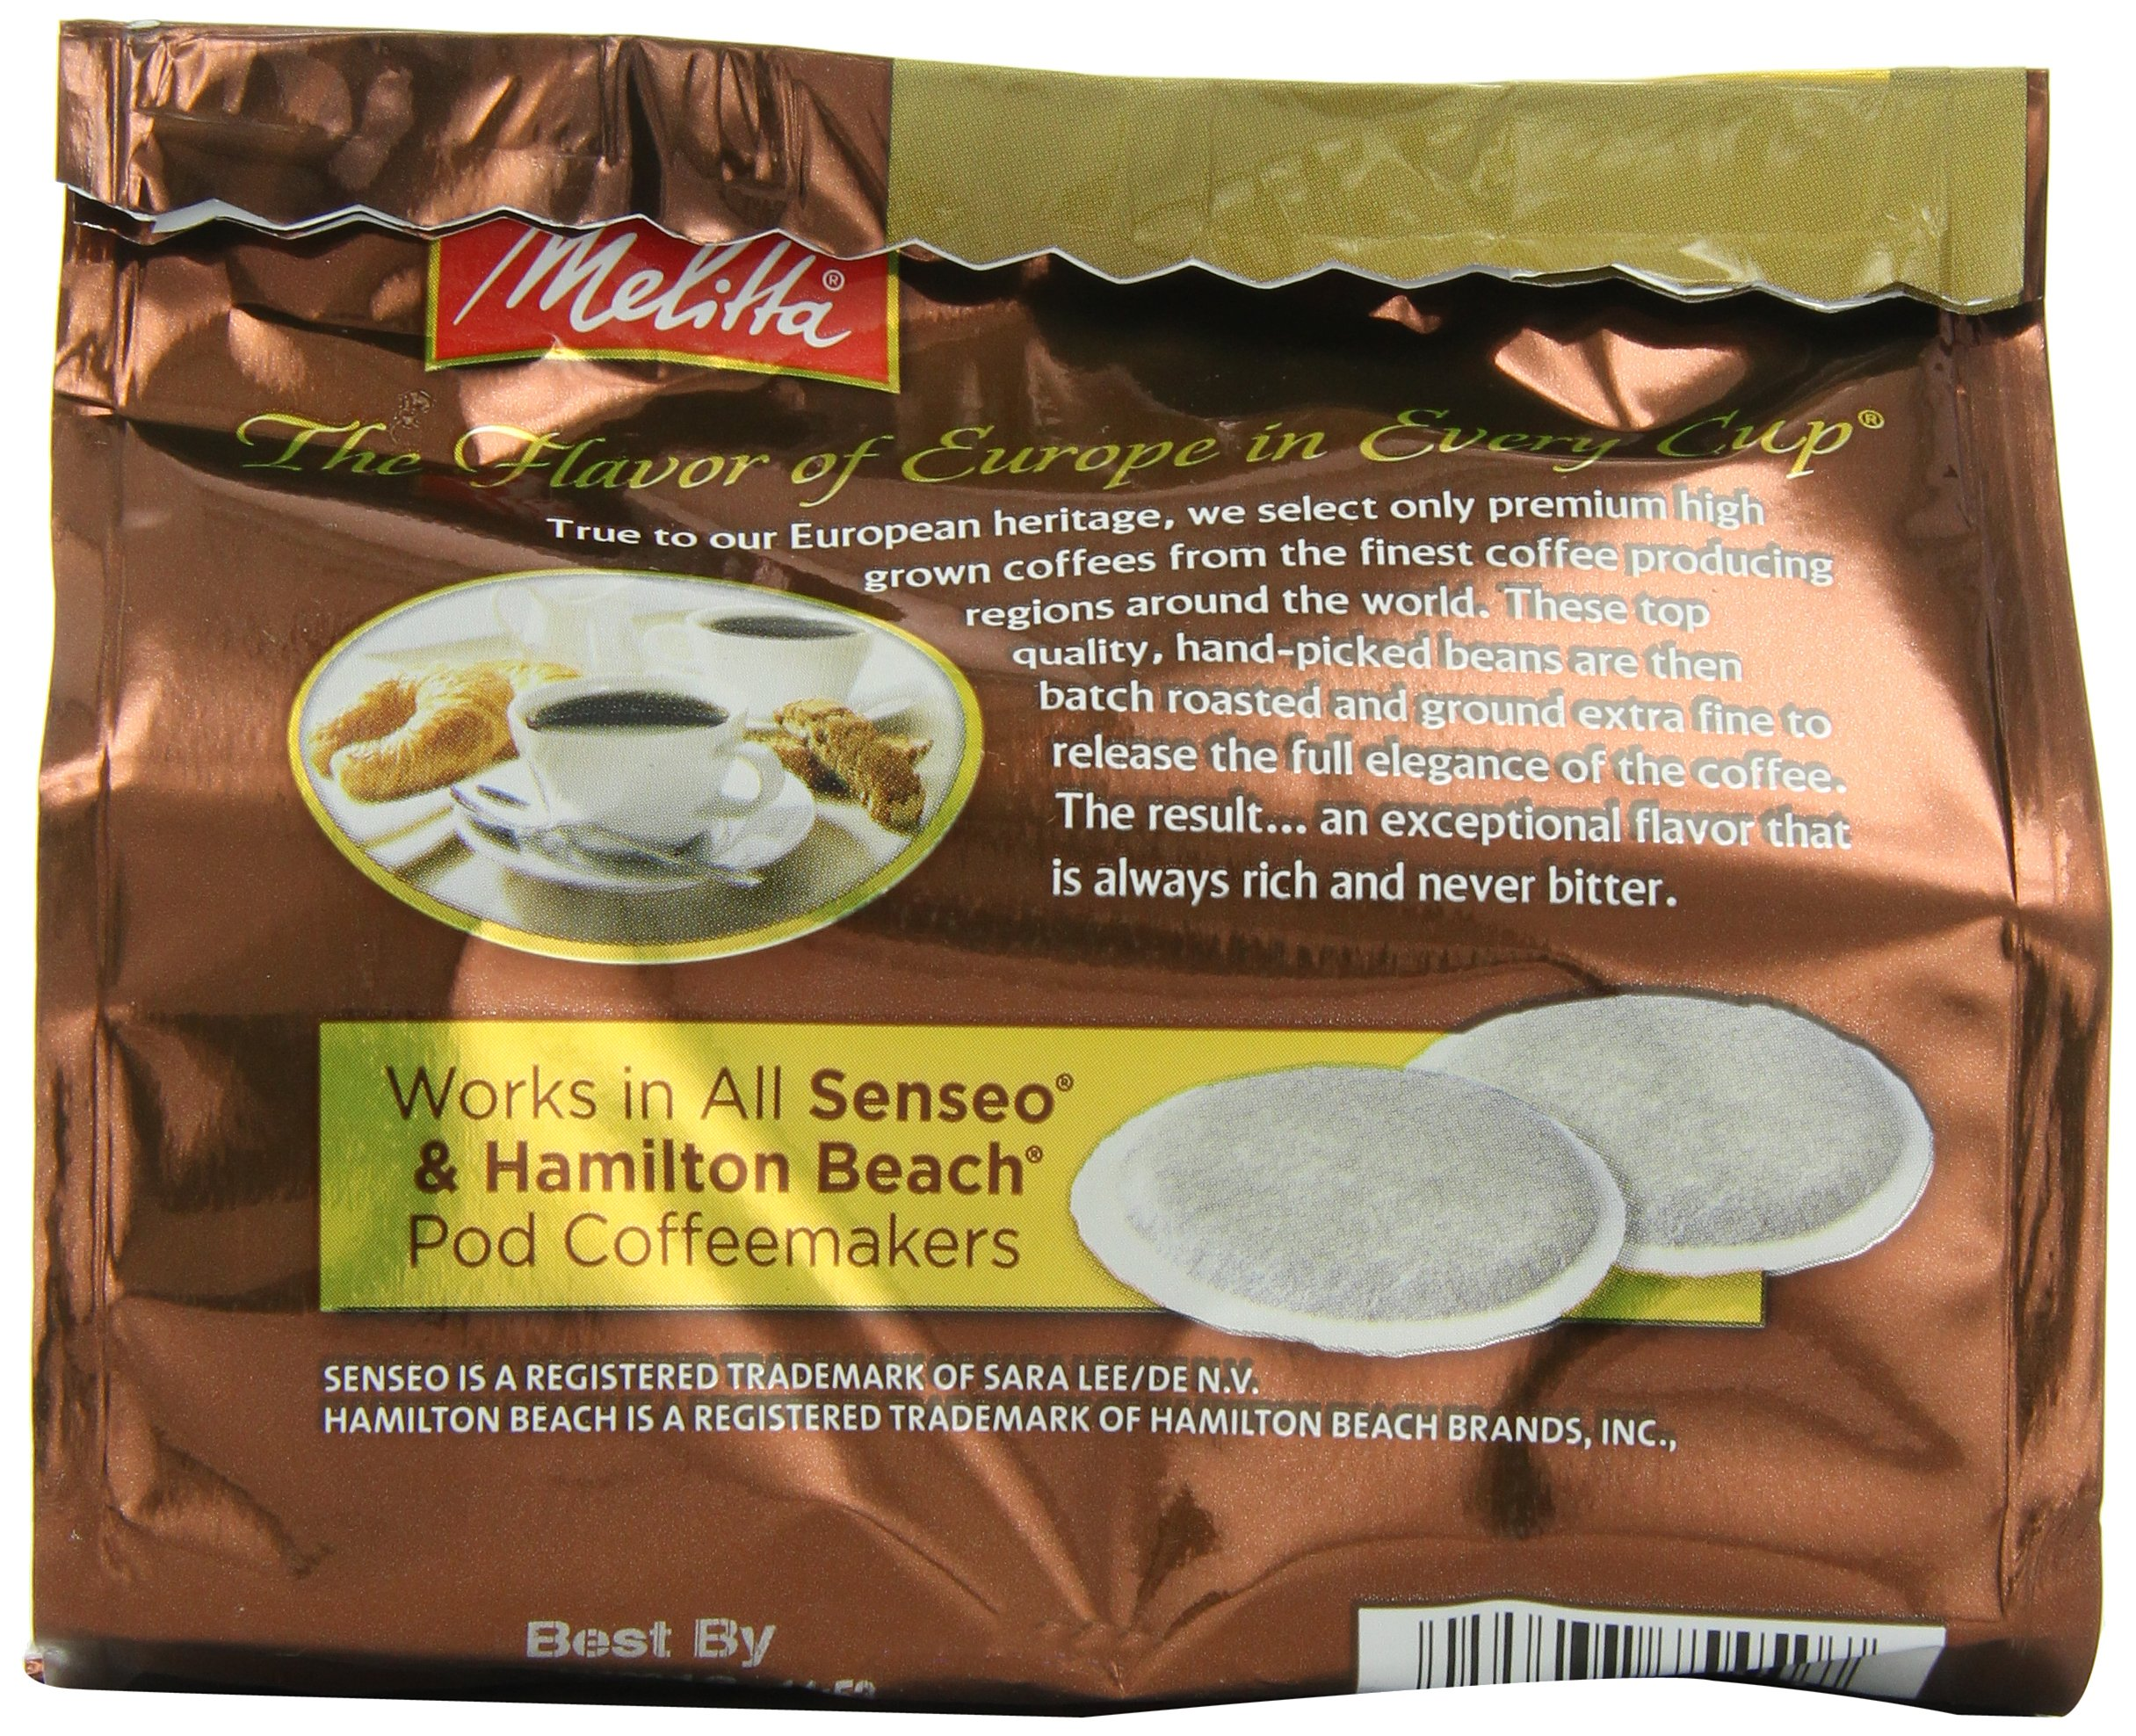 Melitta Coffee Pods for Senseo and Hamilton Beach Pod Brewers, Decaf (Pack of 6) 16 Count Bags, 3.95 Oz Each by Melitta